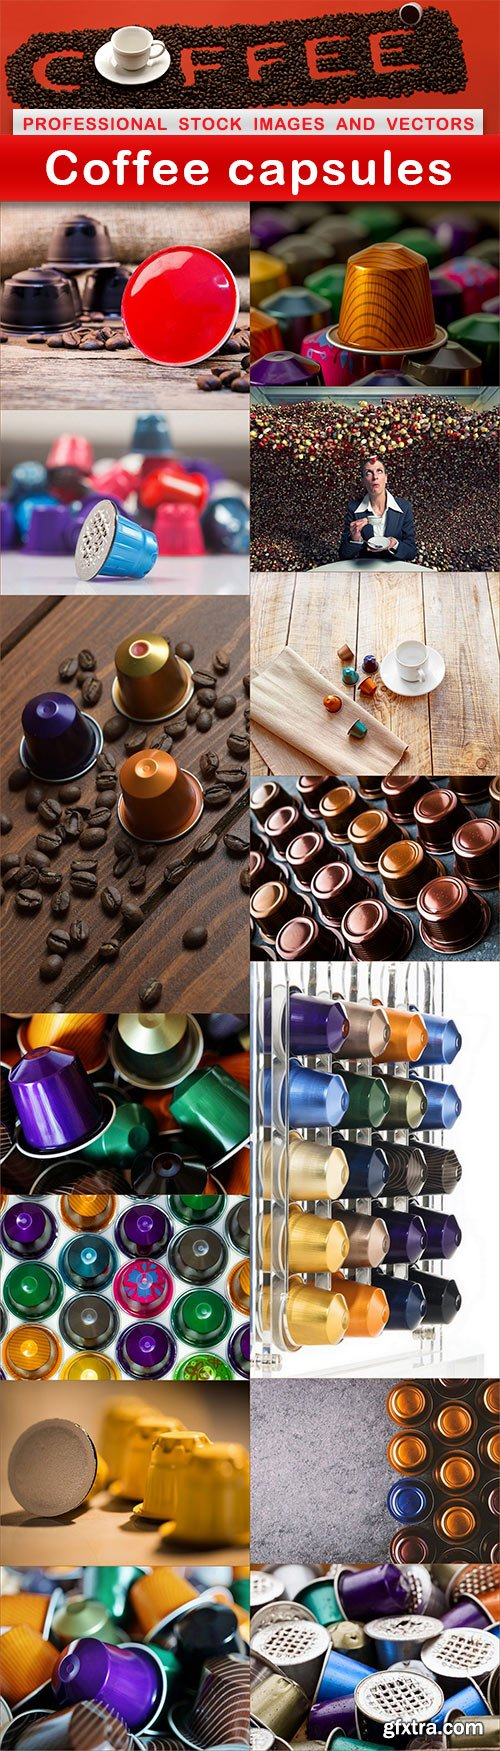 Coffee capsules - 15 UHQ JPEG